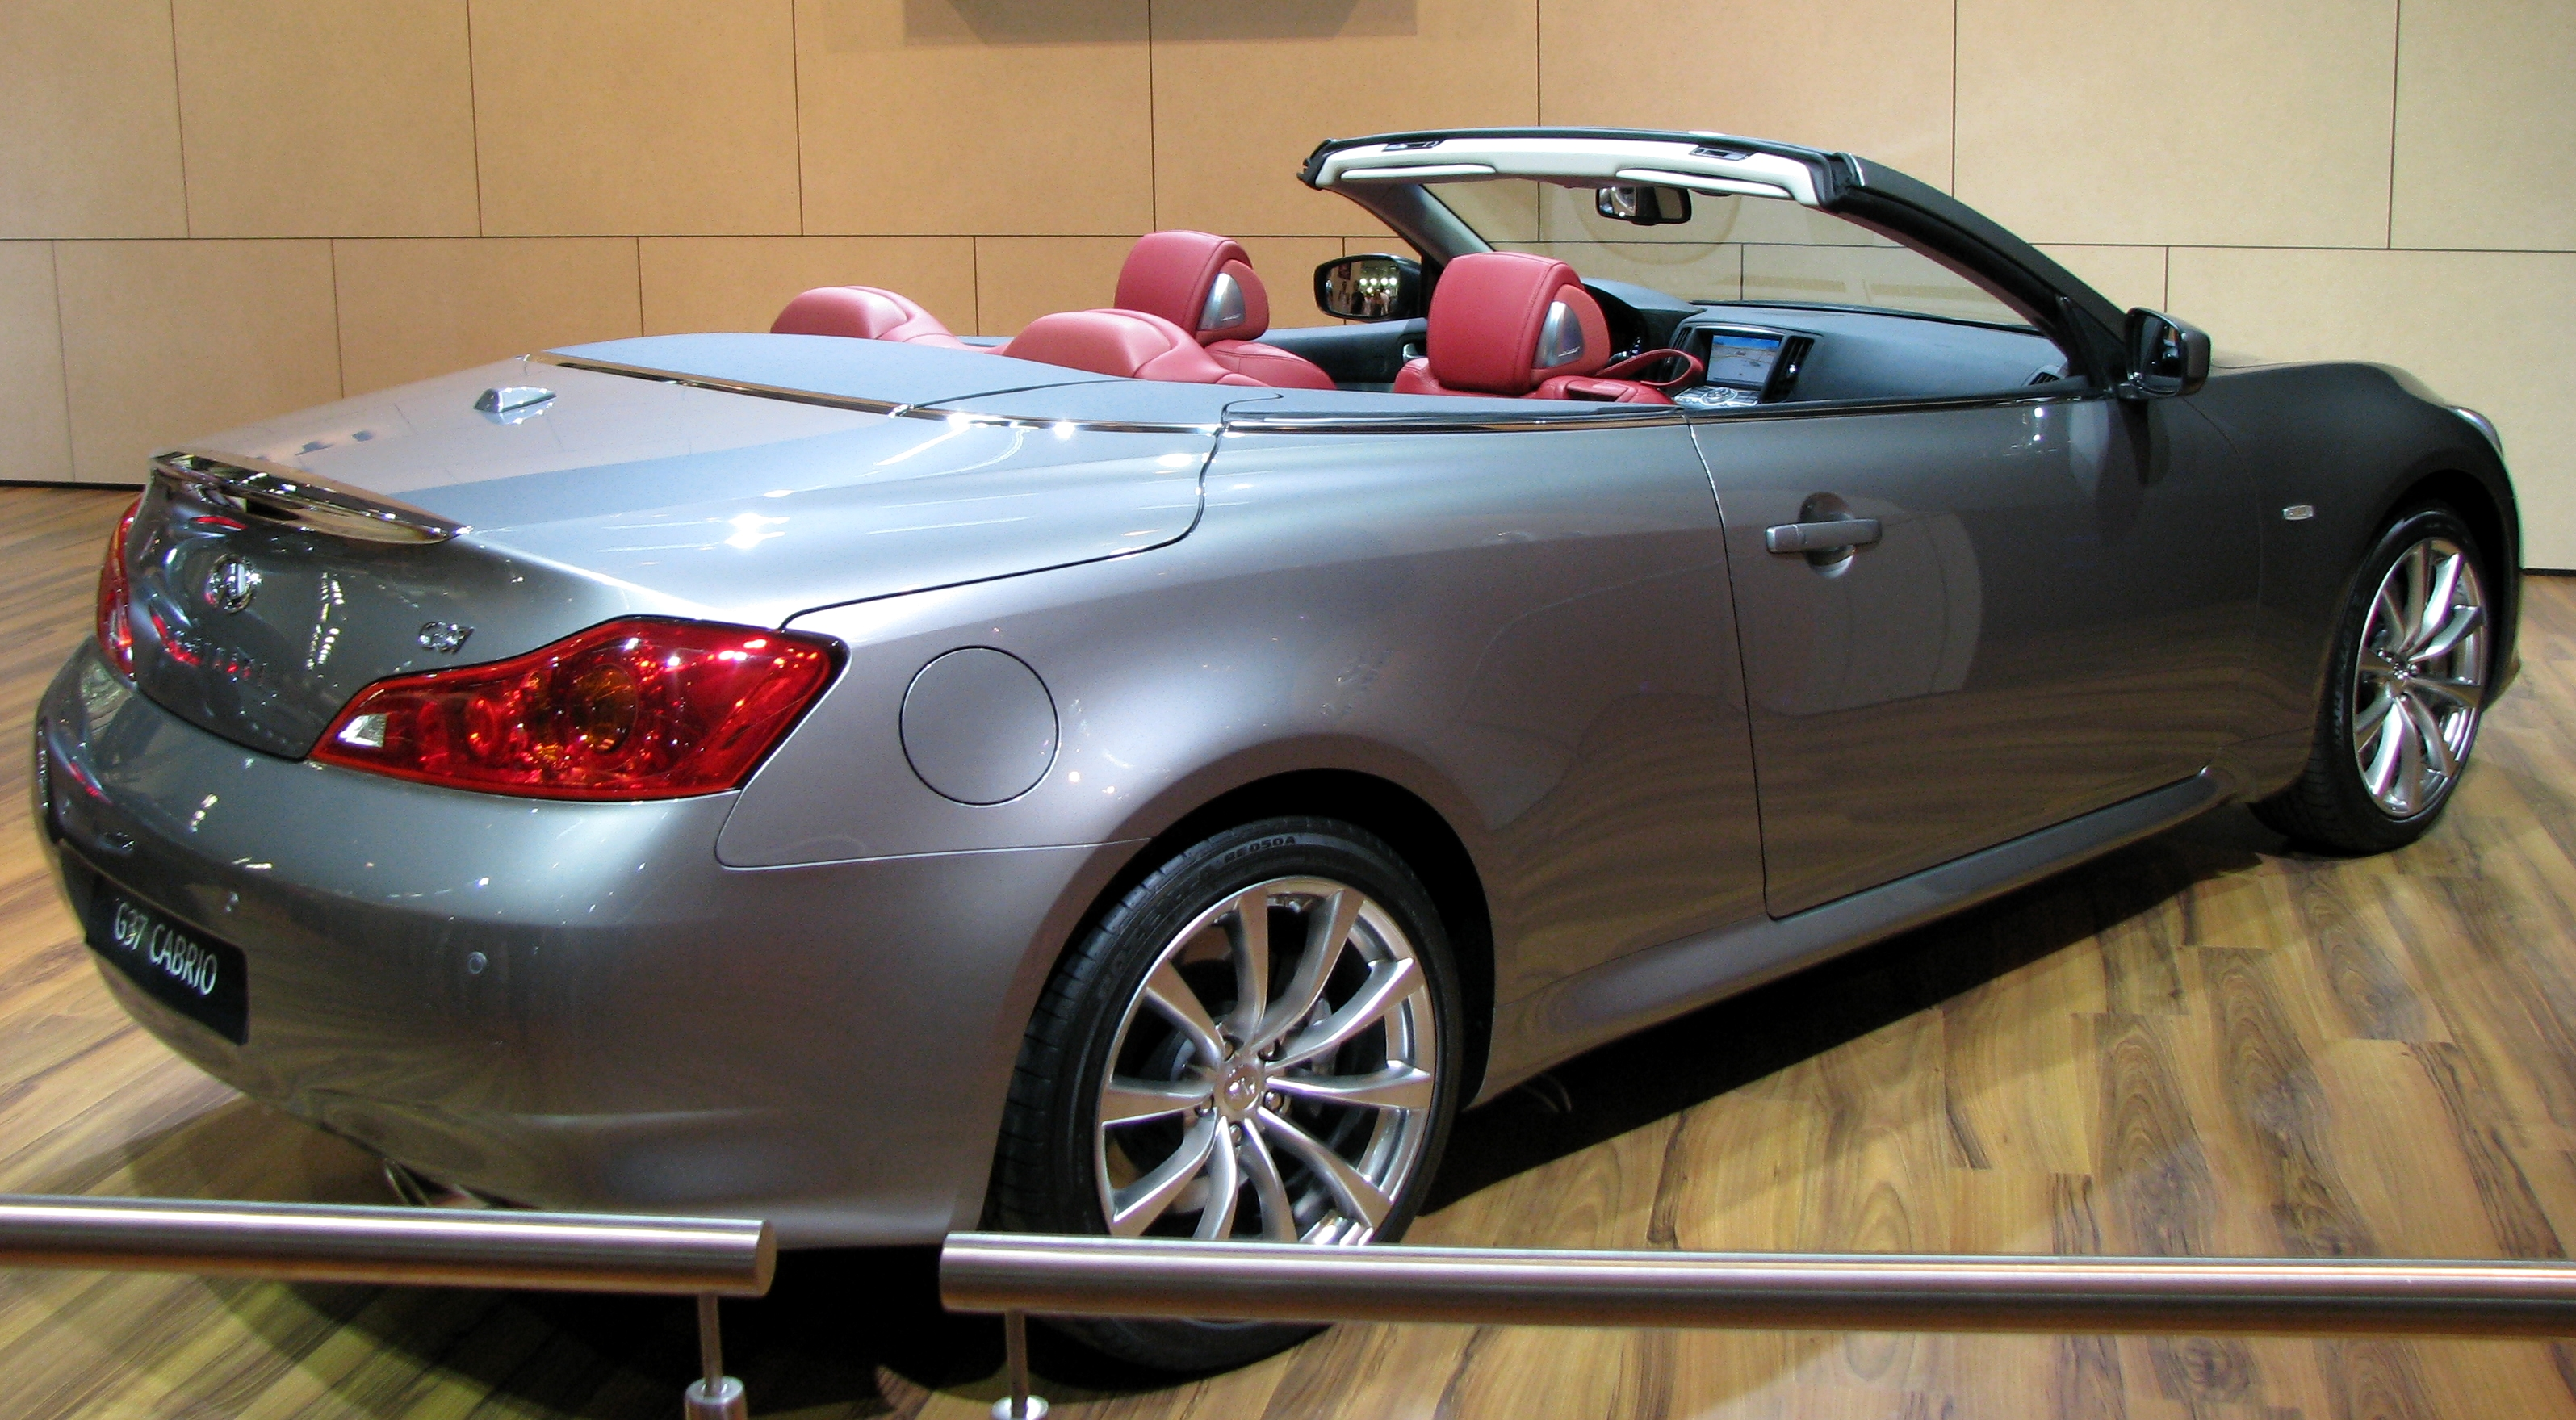 2010 infiniti g37 convertible information and photos zombiedrive. Black Bedroom Furniture Sets. Home Design Ideas